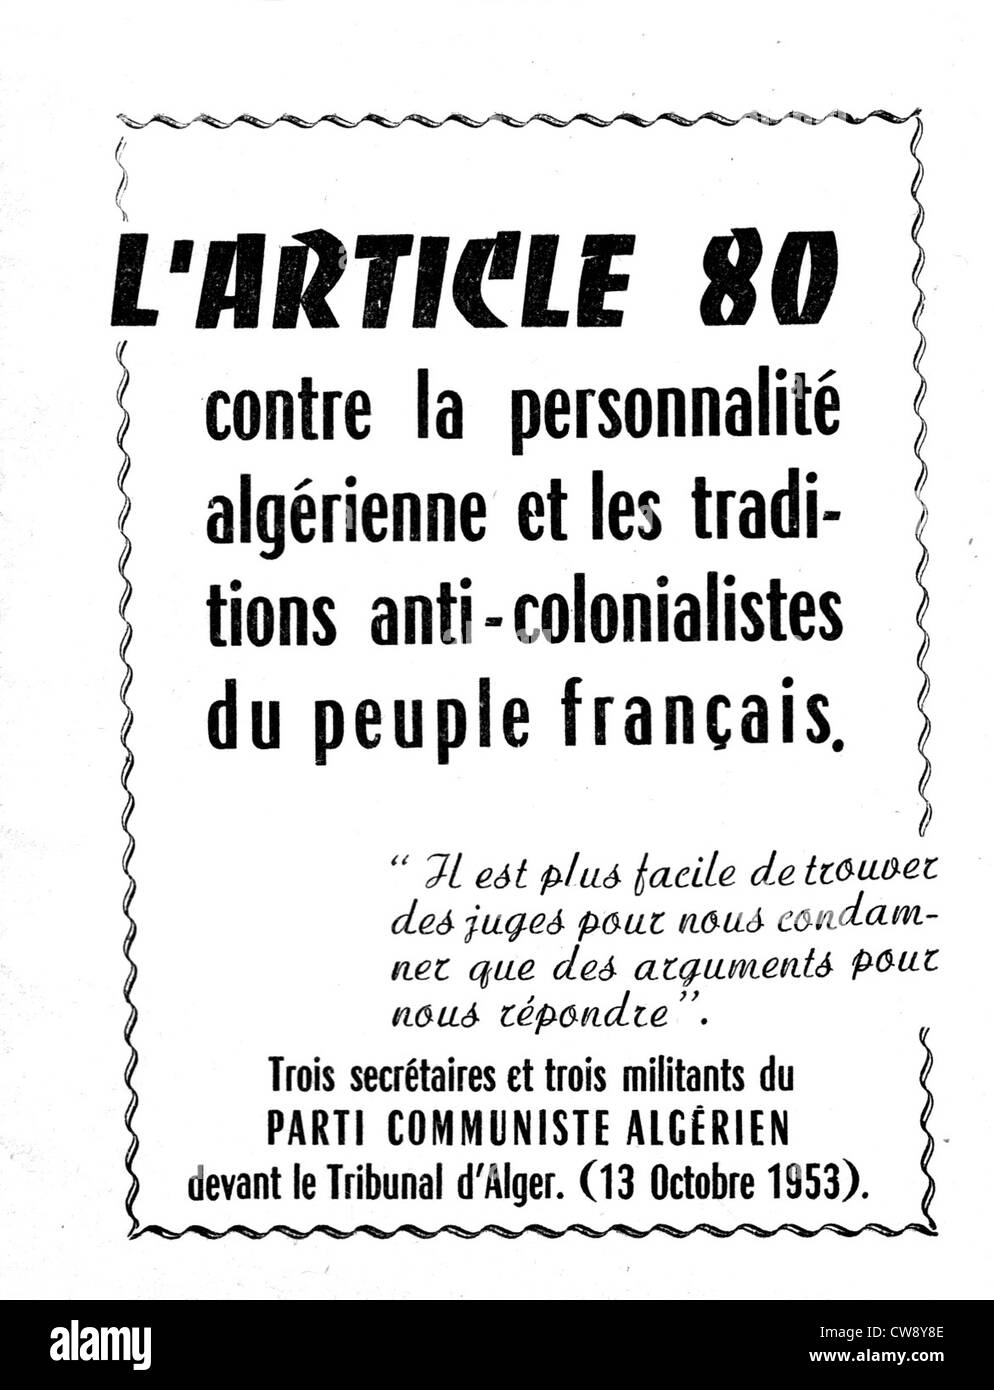 Leaflet published by the Algerian Communist Party - Stock Image